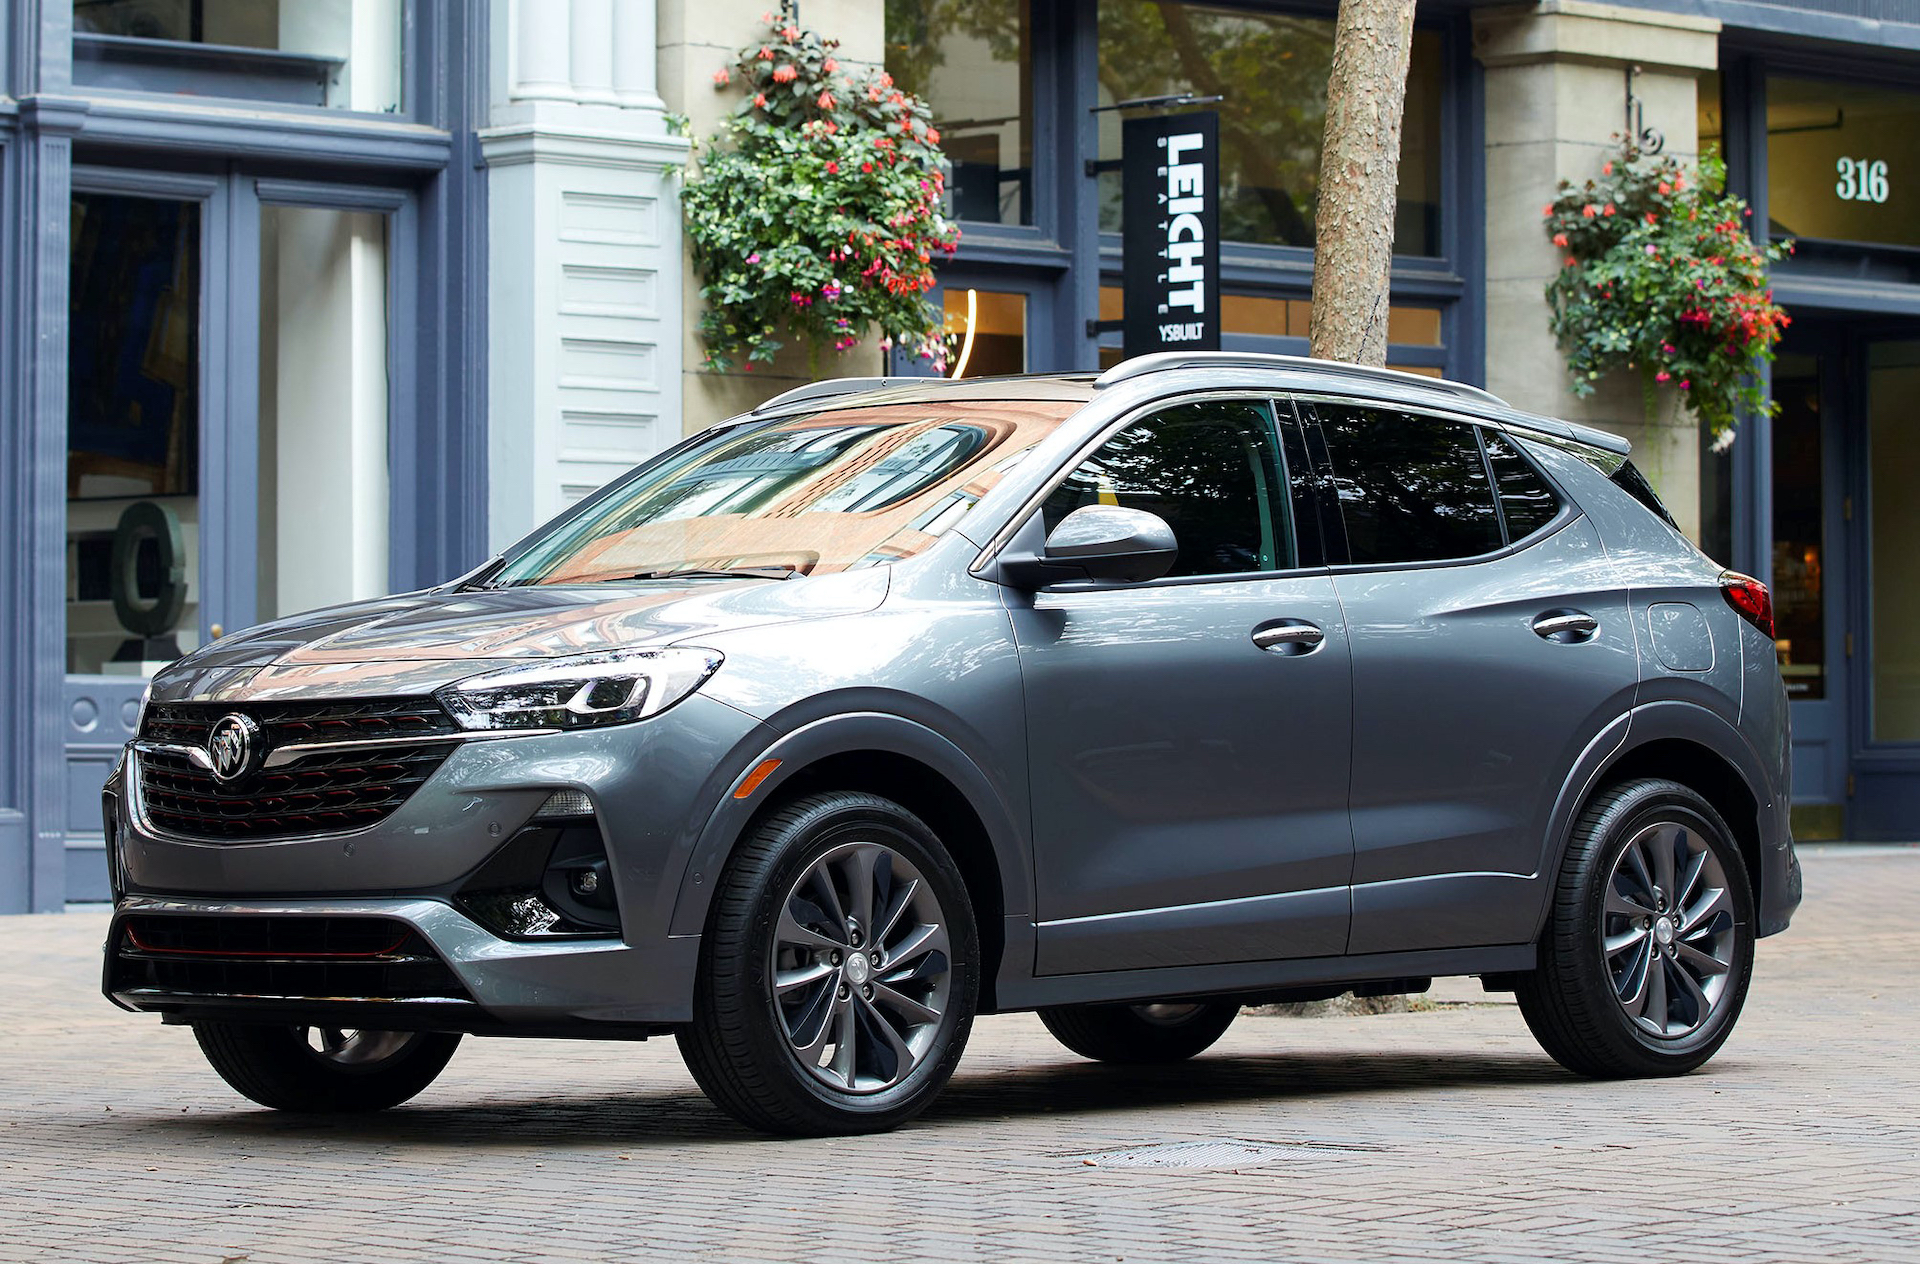 2021 Buick Encore Gx Review, New York Auto Show Canceled New 2022 Buick Encore Gx Pictures, Ratings, Road Test